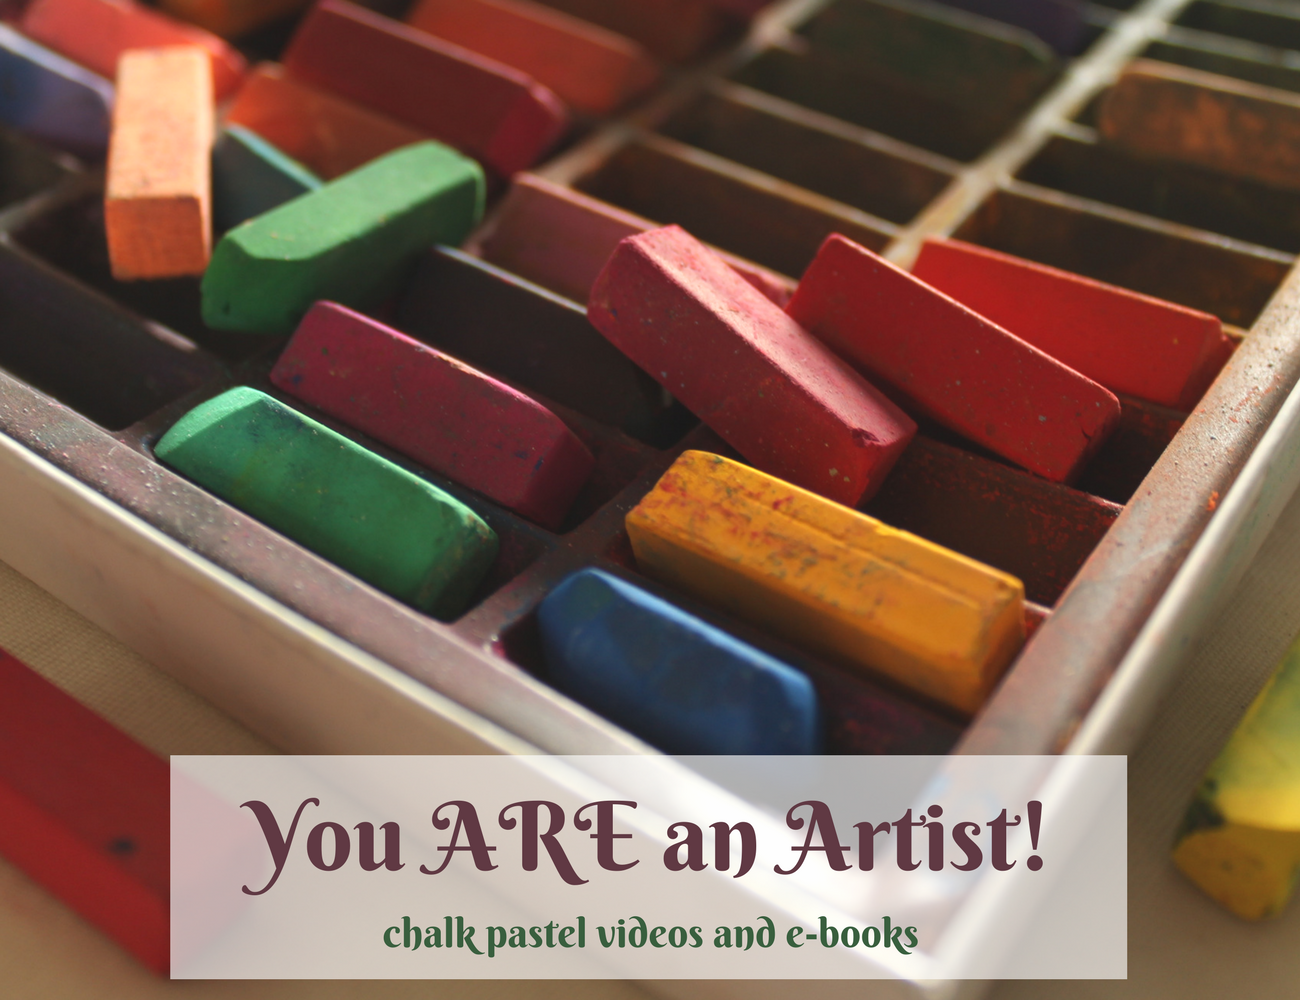 You ARE an Artist!